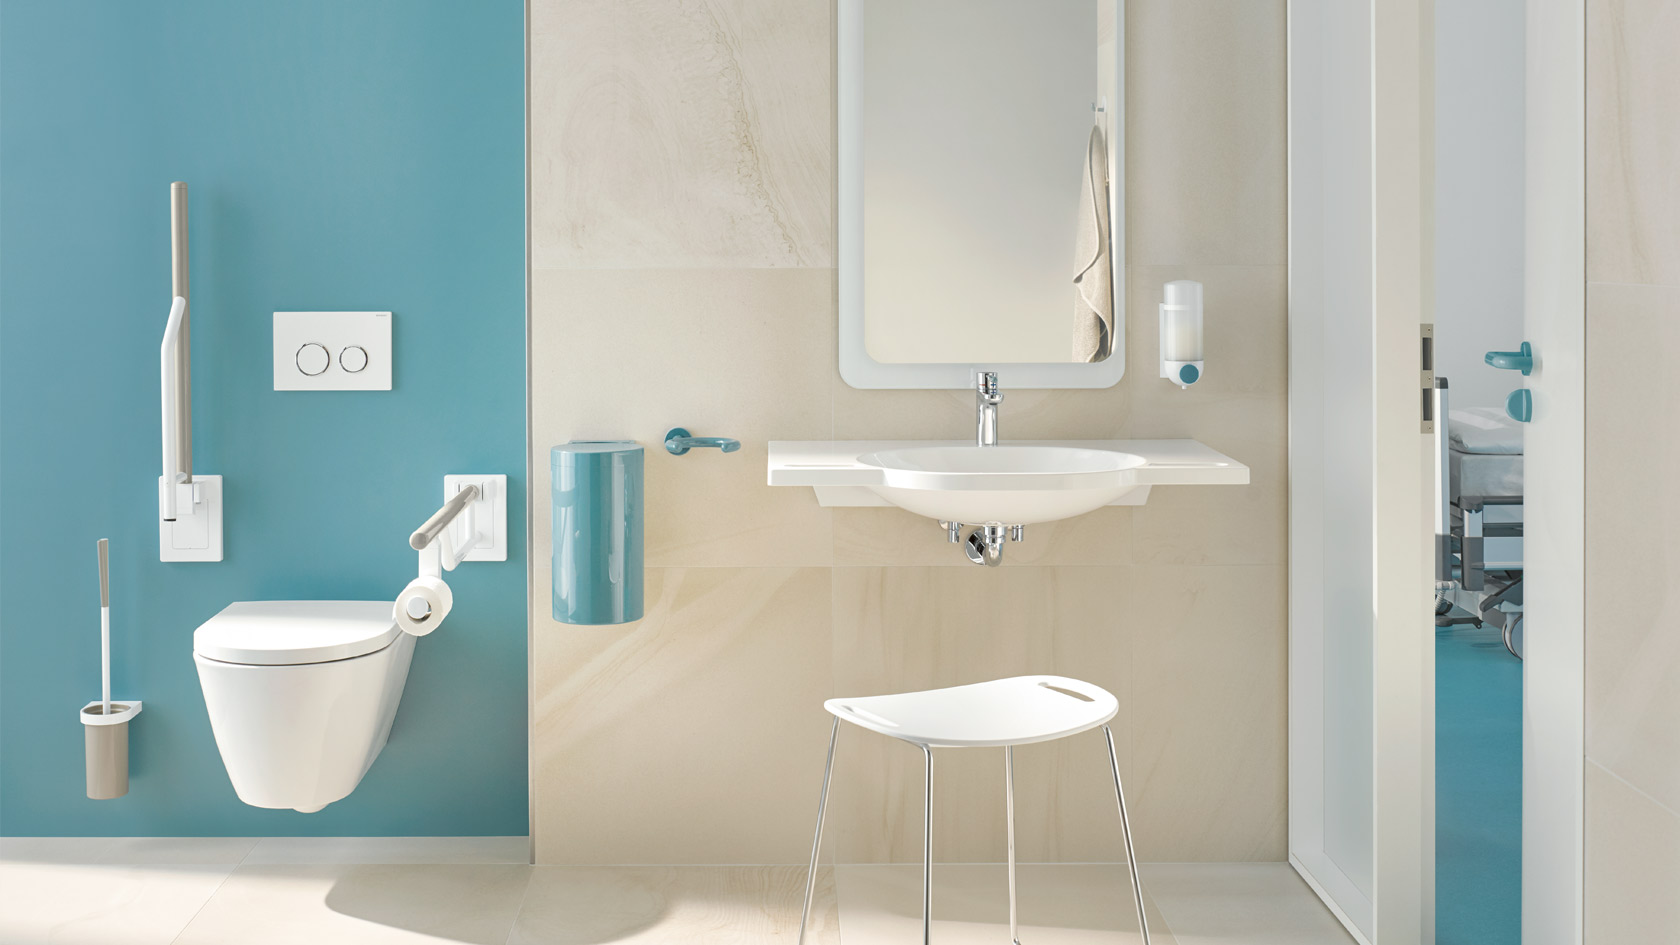 Sanitary System Products Reduced Design And Material